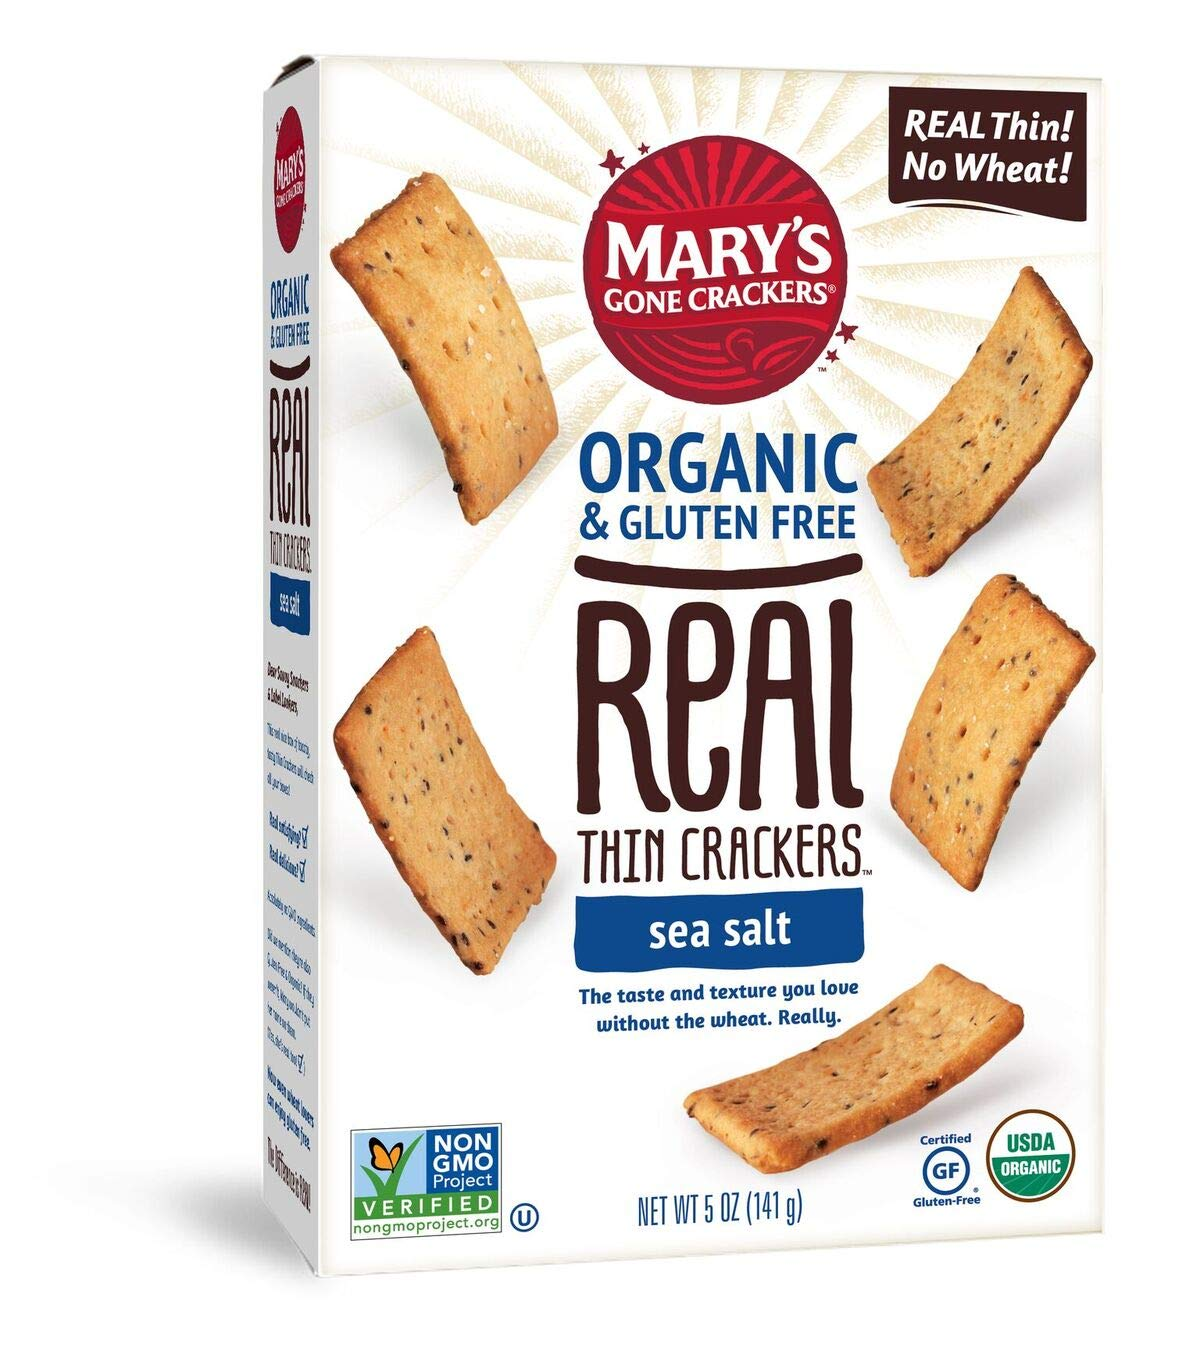 Mary's Gone Crackers Real Thin Crackers, Made with Real Organic Whole Ingredients, Gluten Free, Sea Salt, 5 Ounce (Pack of 6) by Mary's Gone Crackers